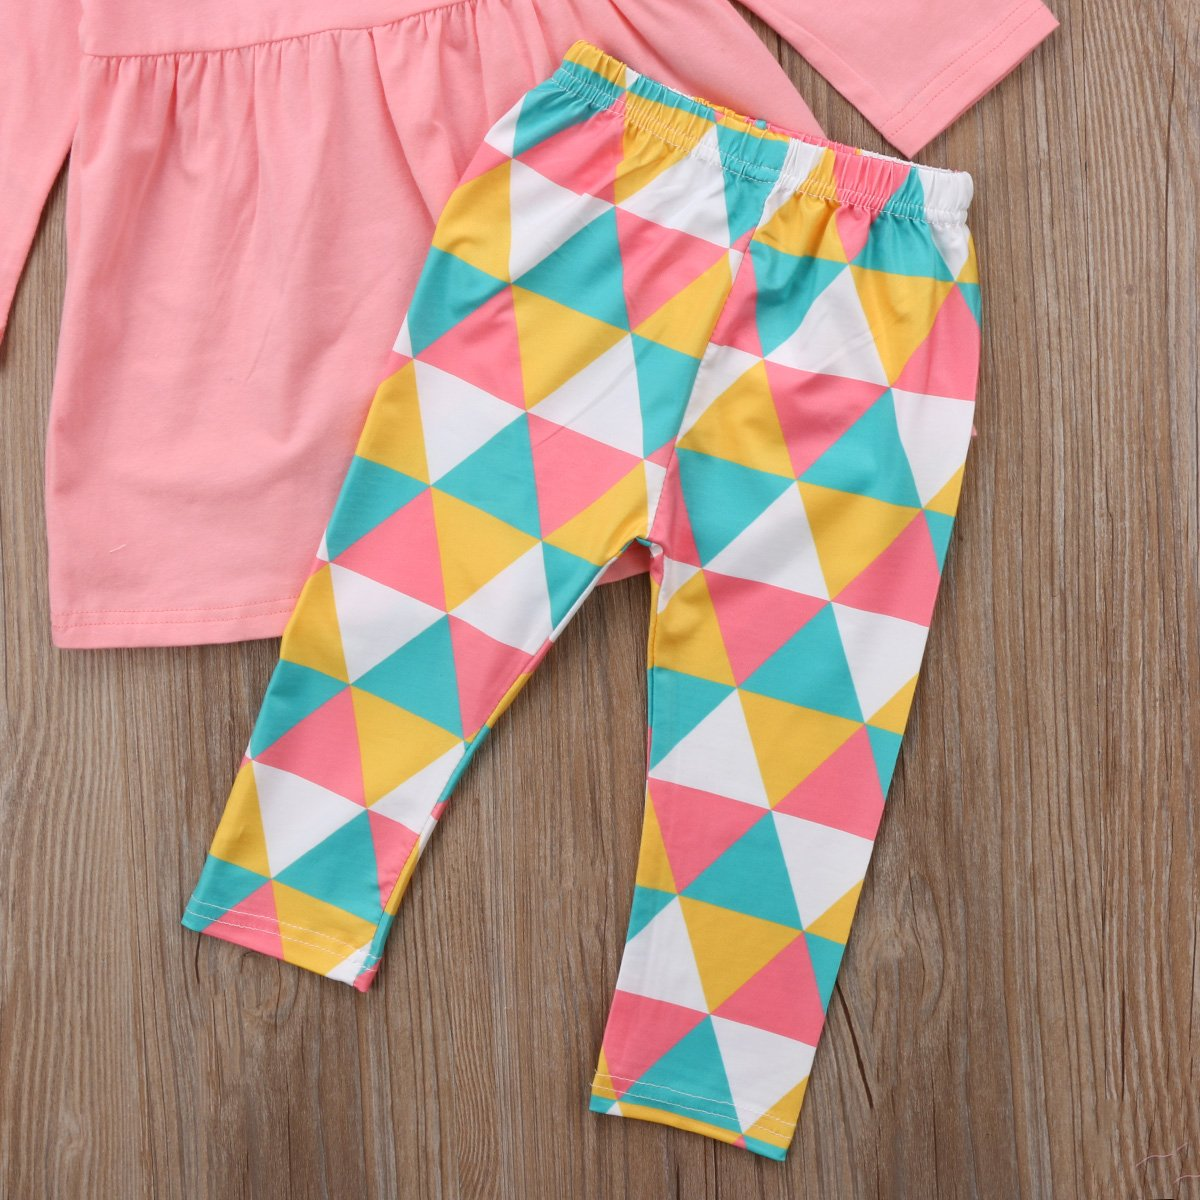 ThreeC Kids Little Girls 3 Piece Long Sleeve Dress Shirt and Geometric Triangle Print Pants and Scarf Winter Outfit